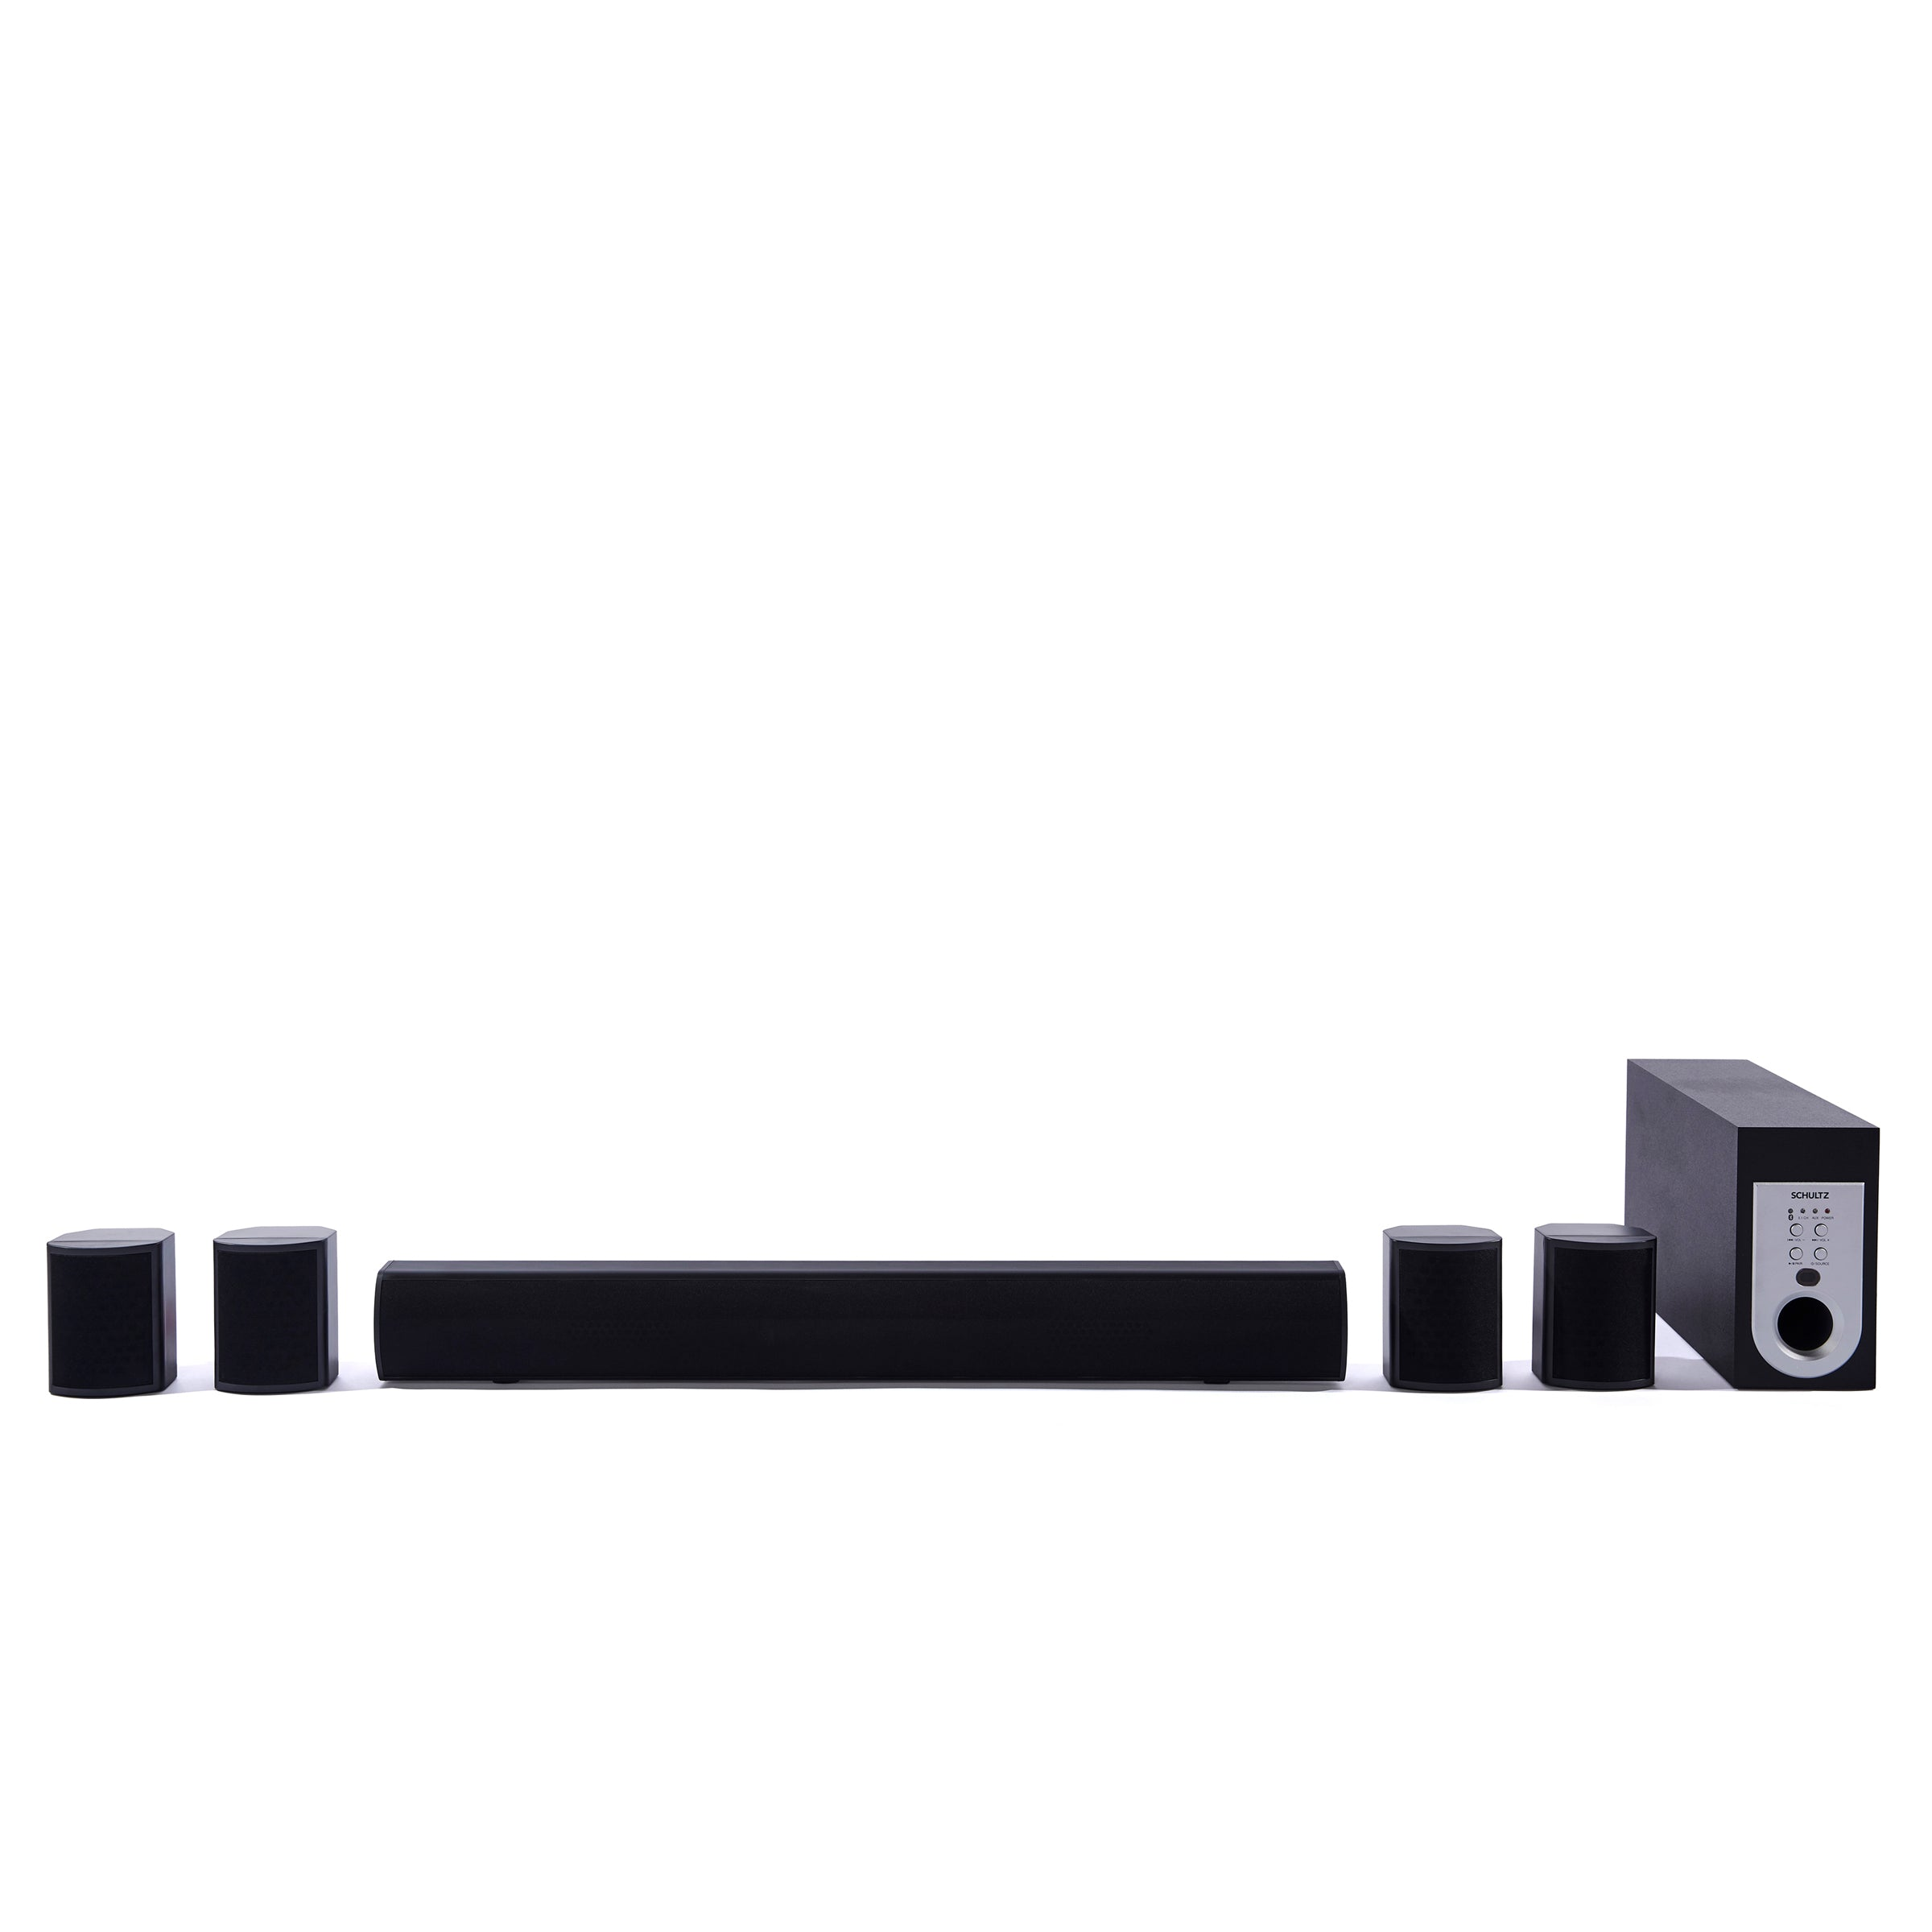 Schultz Sonus 5.1ch Bluetooth Soundbar and Subwoofer Home Theatre System